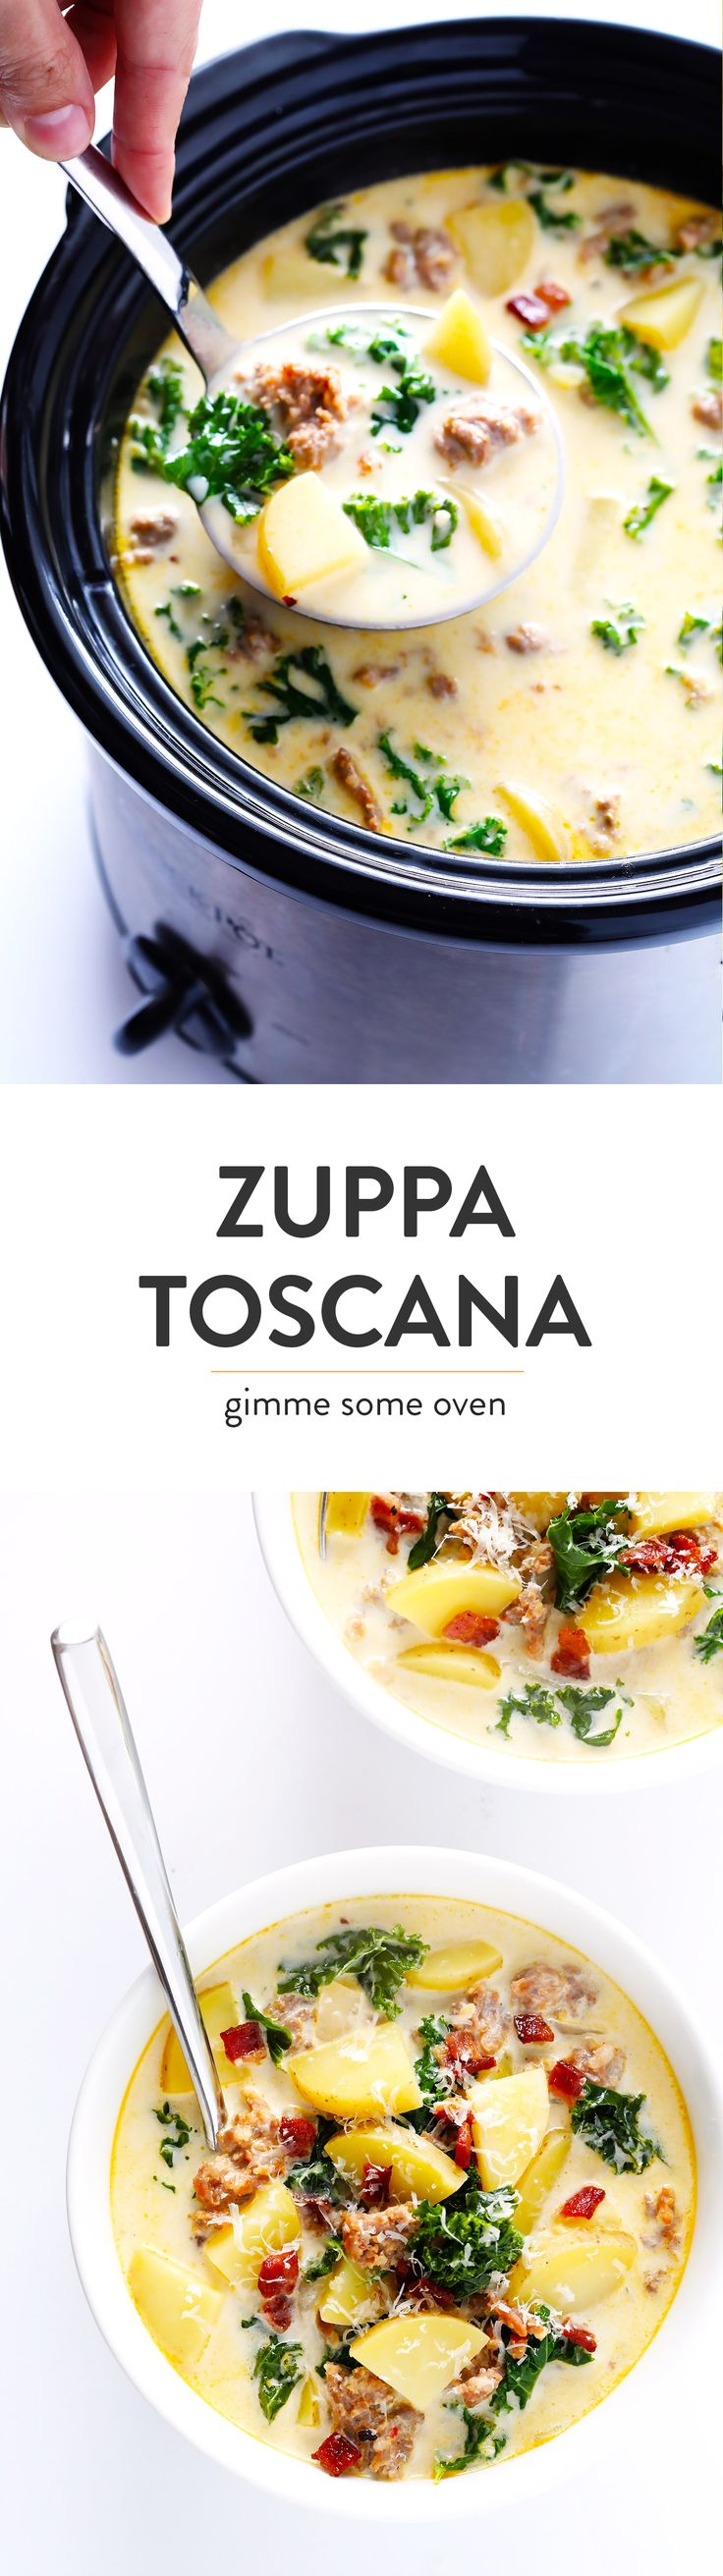 Learn how to make this favorite Olive Garden soup on the stovetop or in the slow cooker! This Zuppa Toscana recipe is super easy to make, naturally gluten-free, and full of the most delicious zesty, creamy flavors. So grab some Italian sausage, kale, potatoes, bacon, Parmesan, and garlic, and make it happen!  Crock-pot instructions also included.